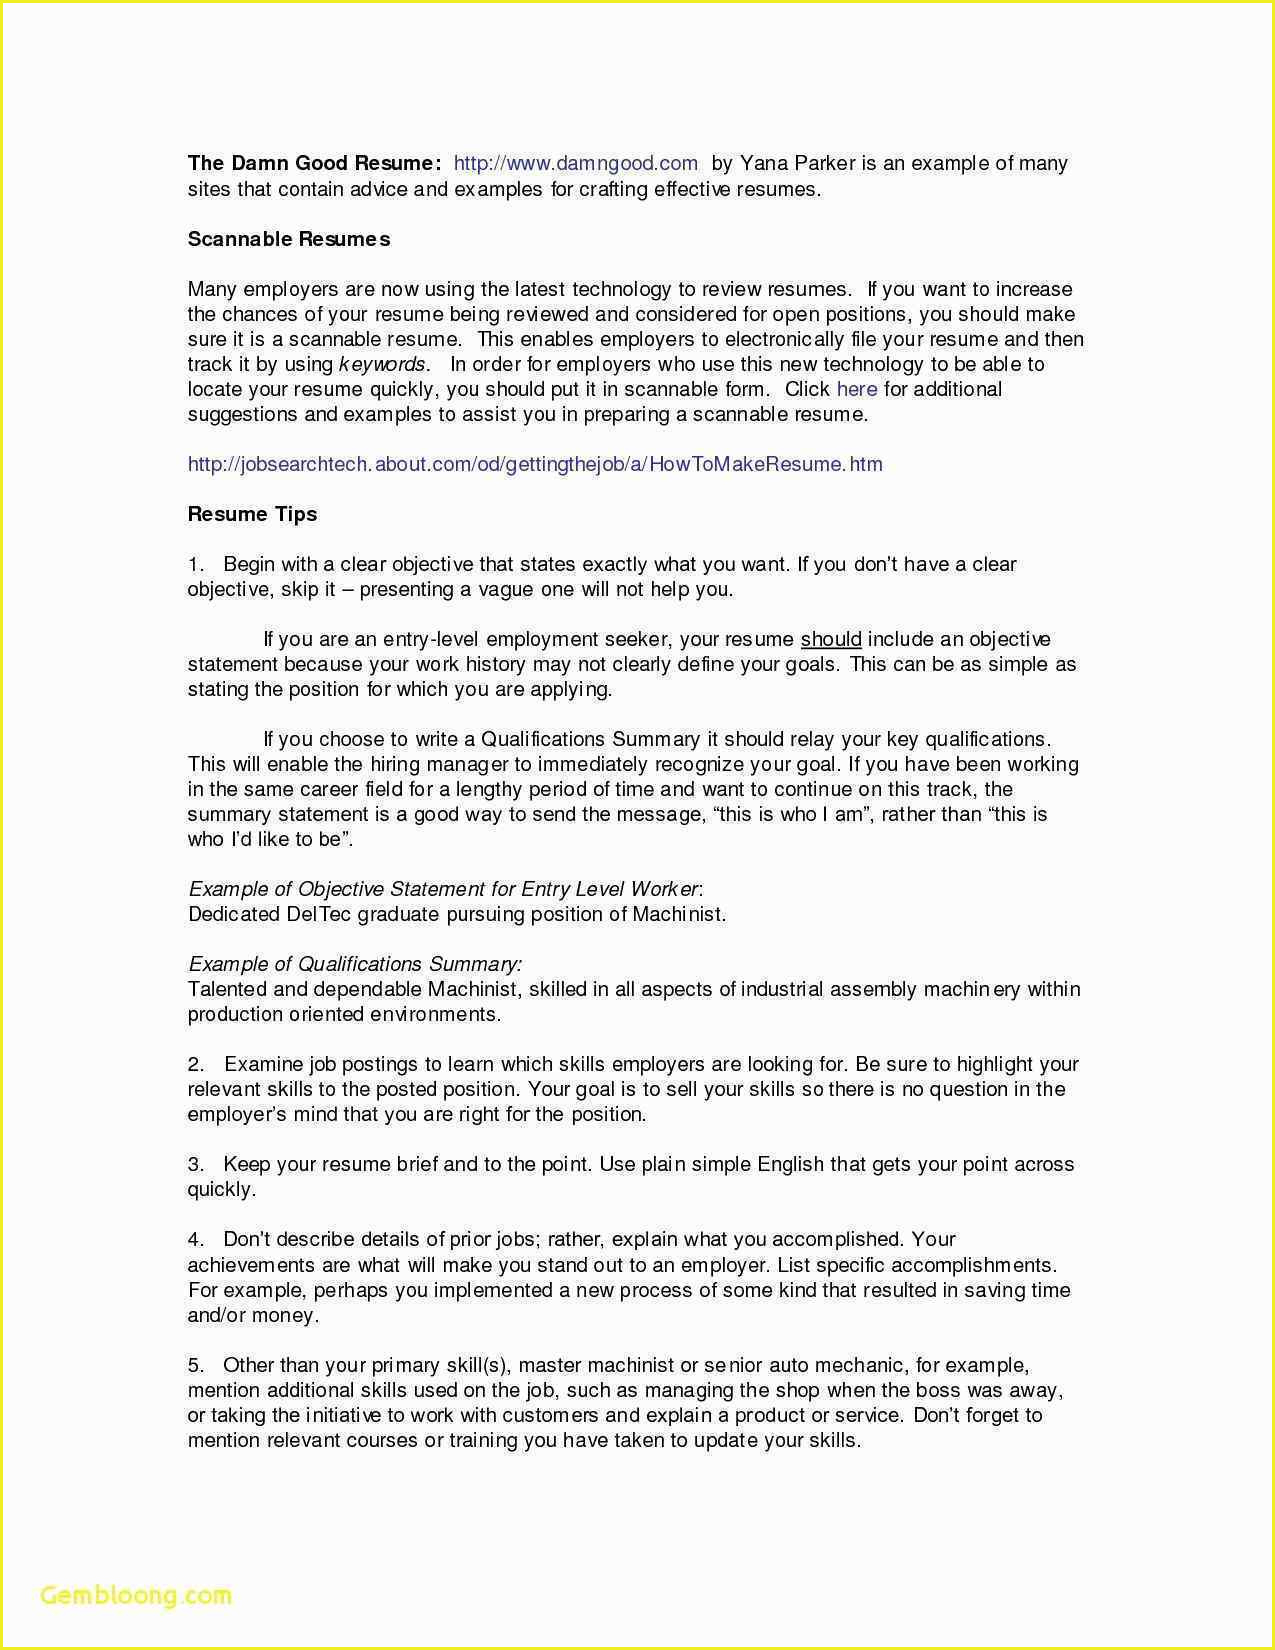 House Keeping Resume - Housekeeping Cover Letter Sample Best Cover Letter Examples for